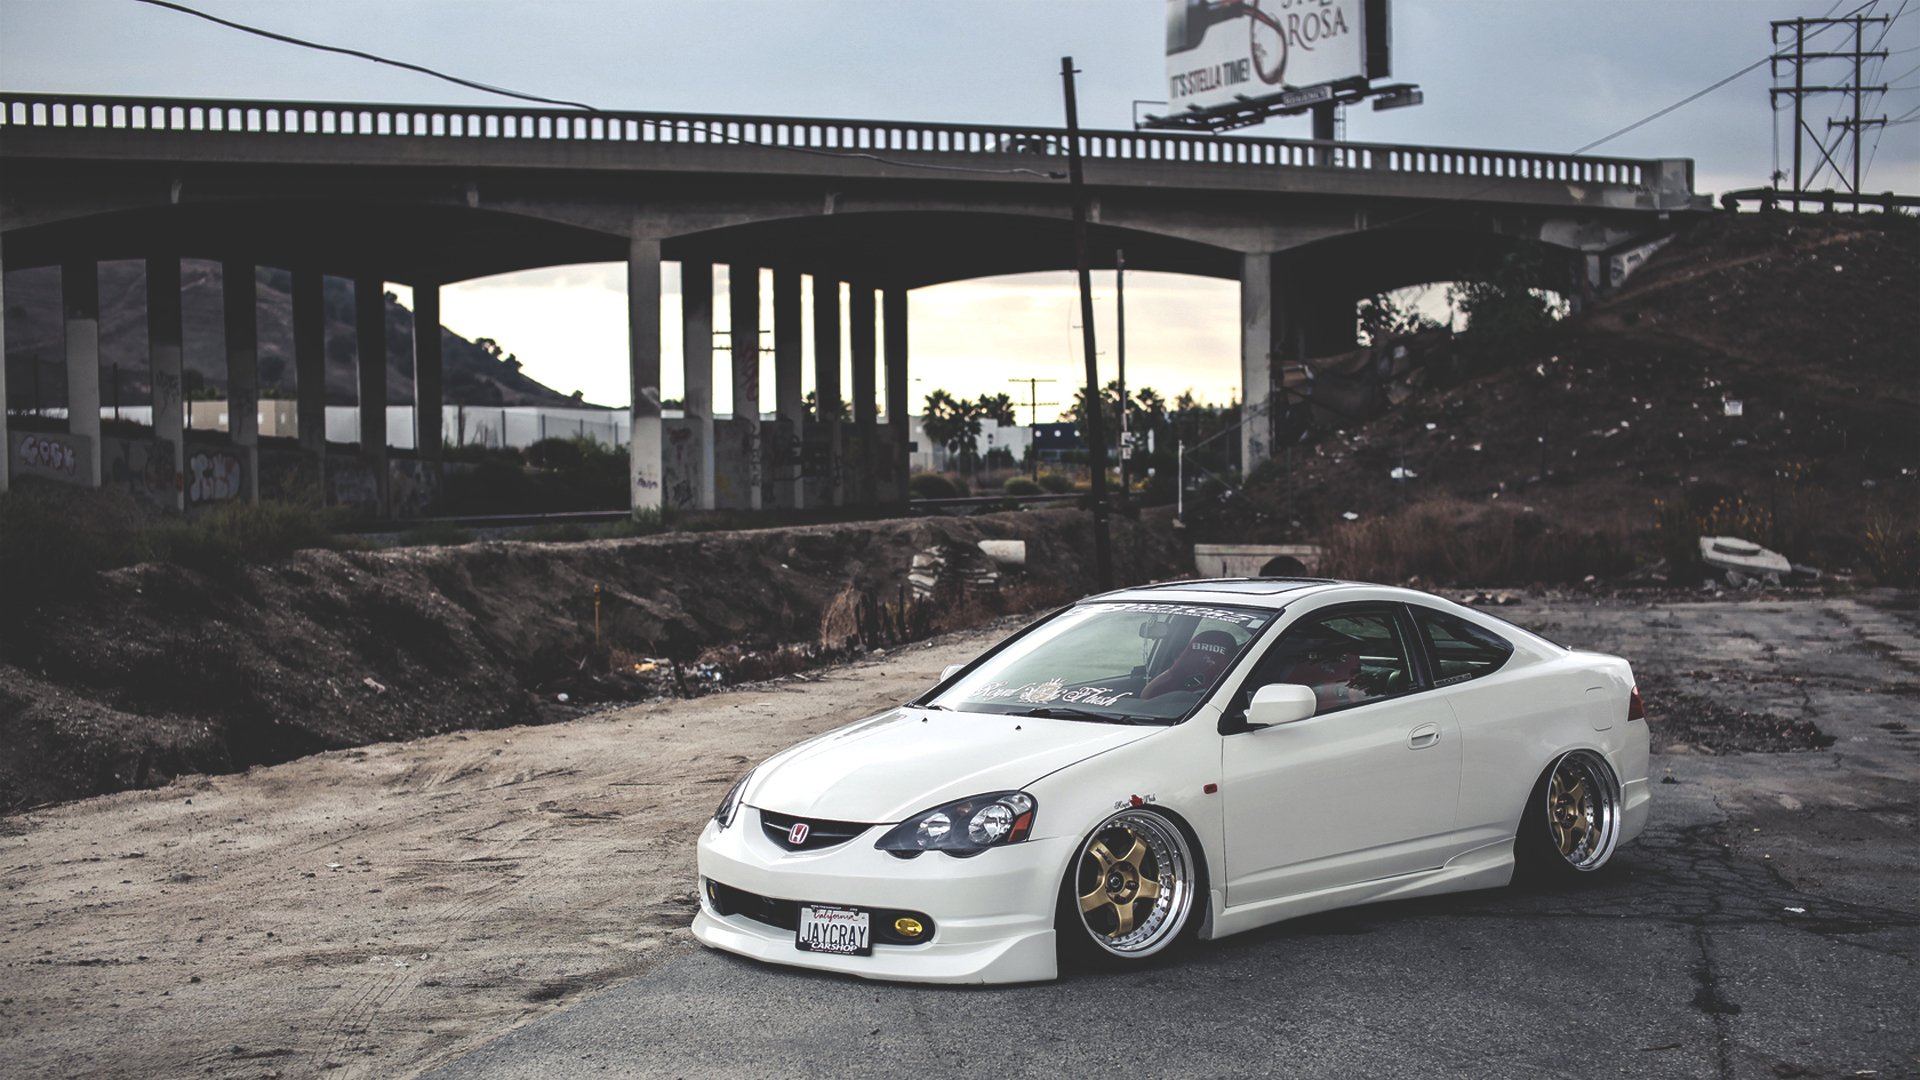 31 Hd Wallpapers Of Acura Integra Type R On Wallpapersafari